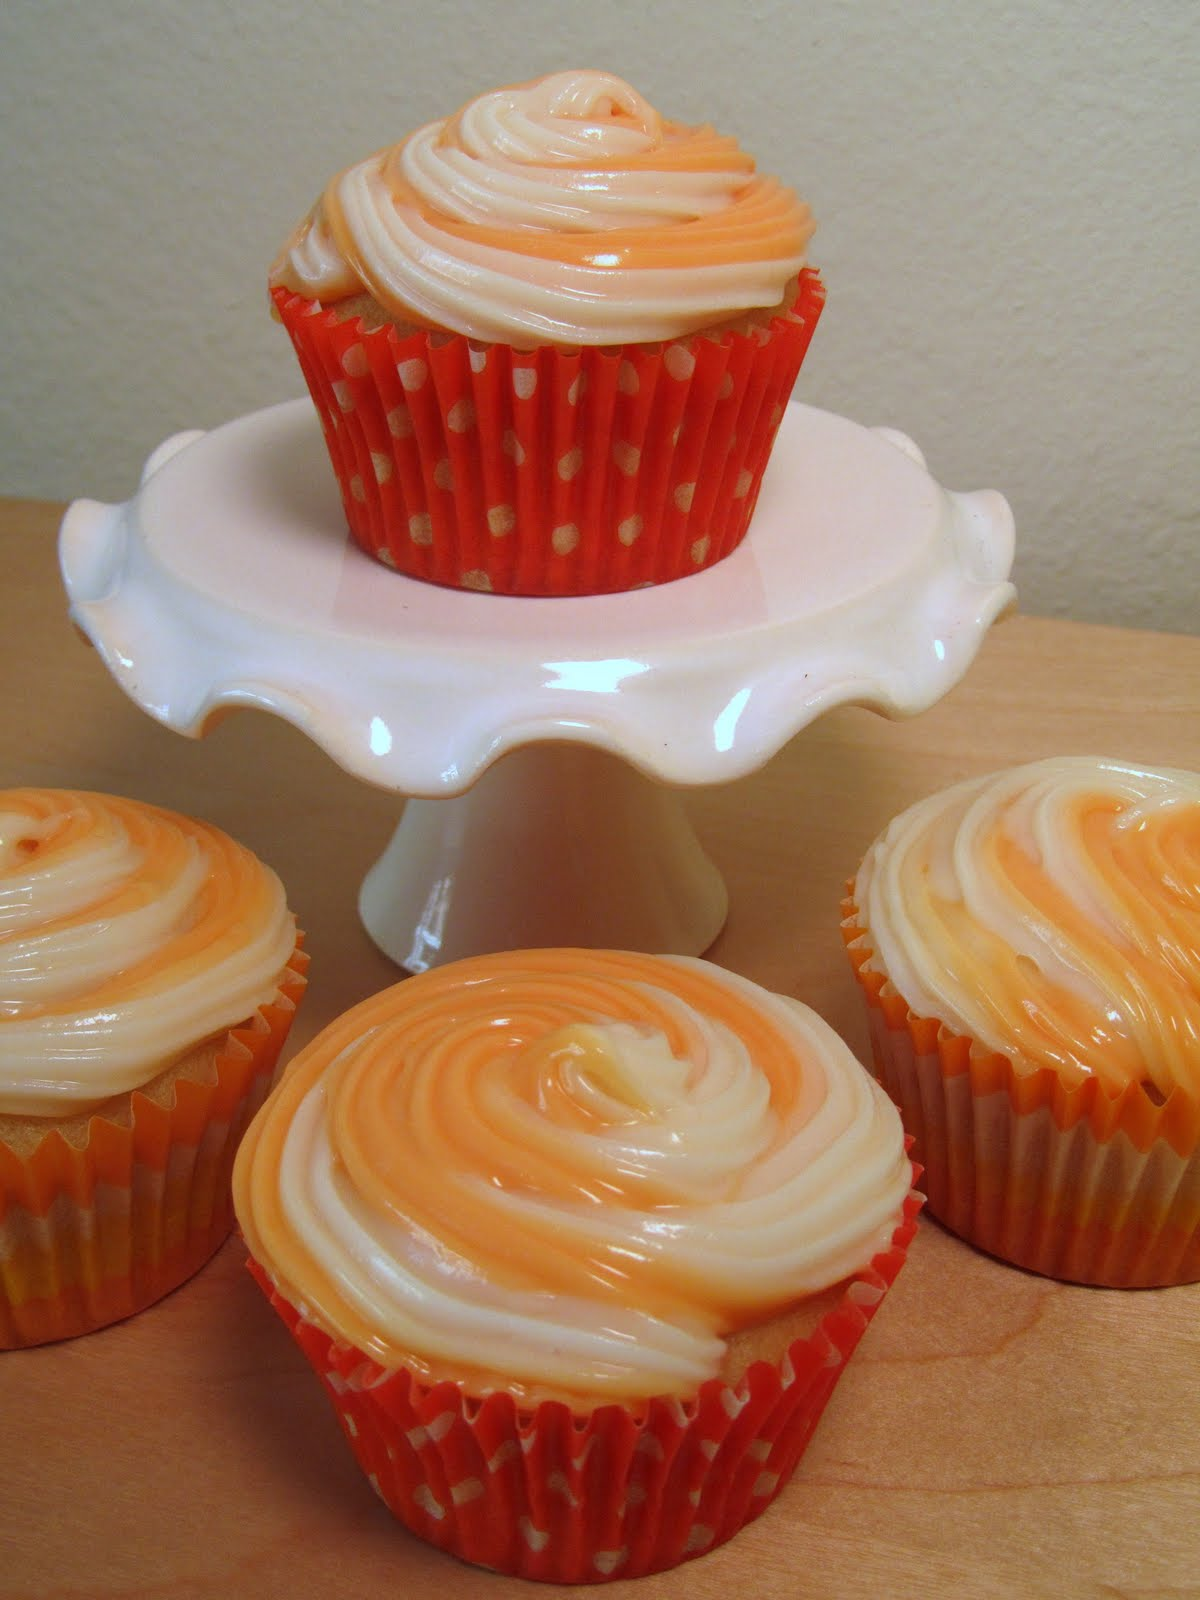 It's the little things in life...: Orange Creamsicle Cupcakes